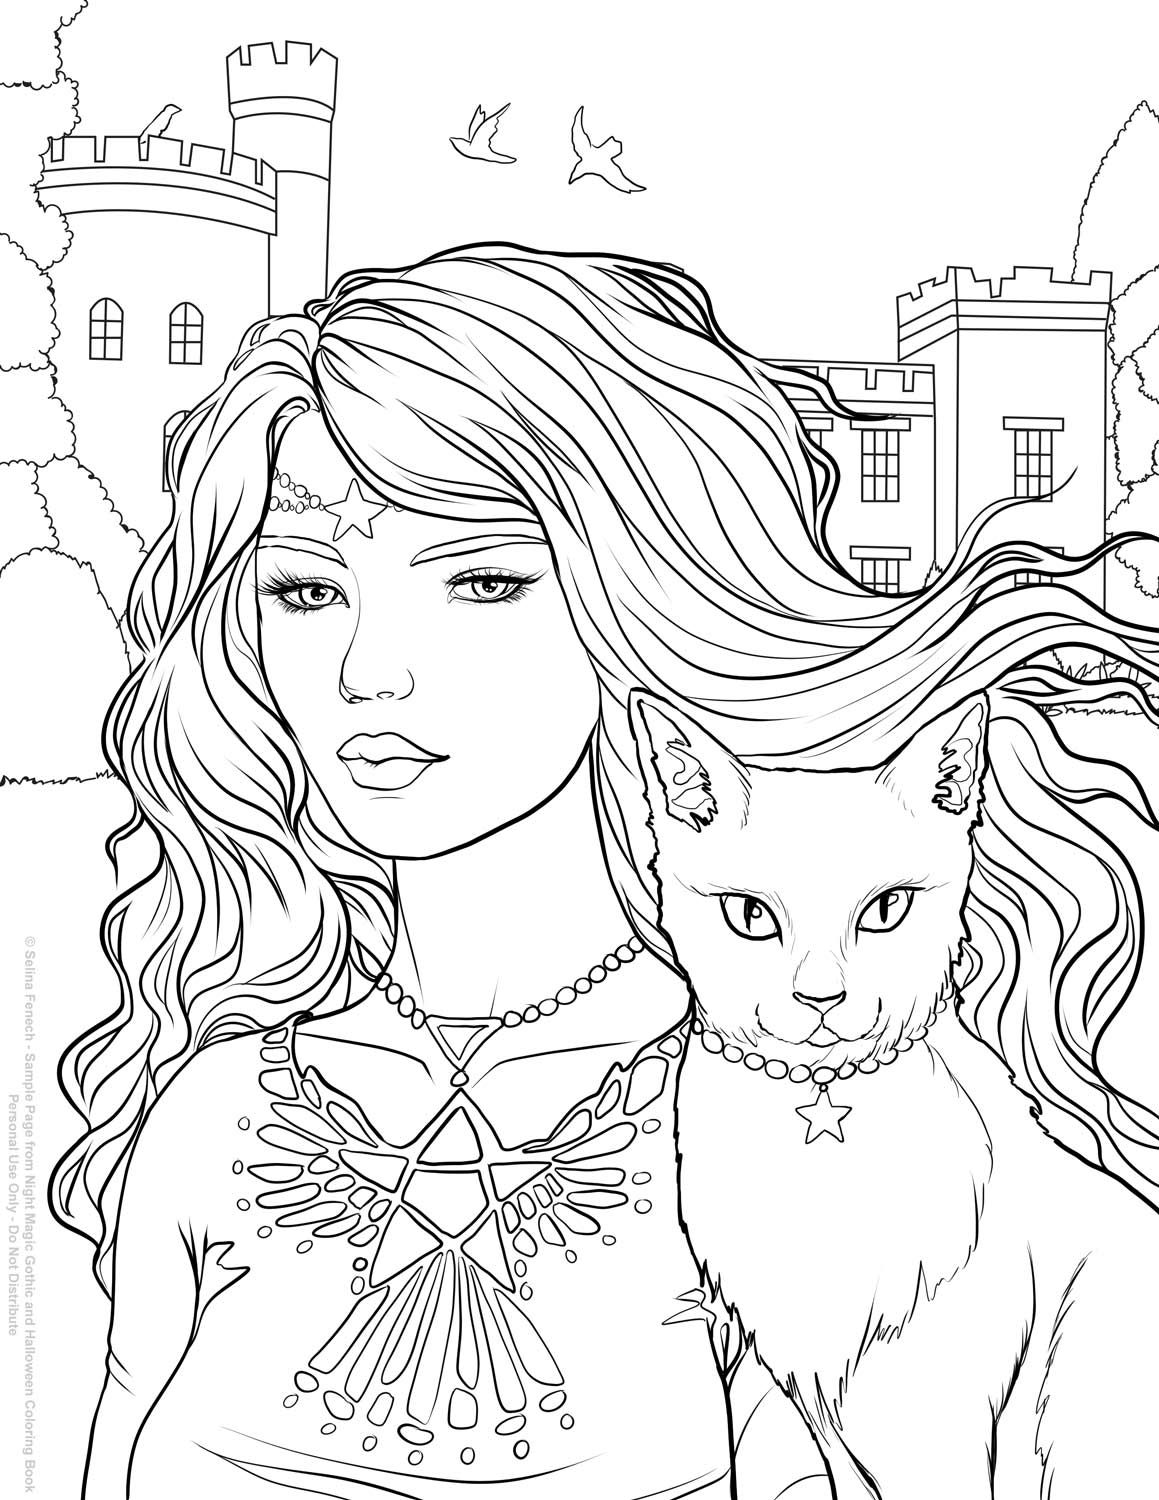 ivys halloween coloring pages - photo#25